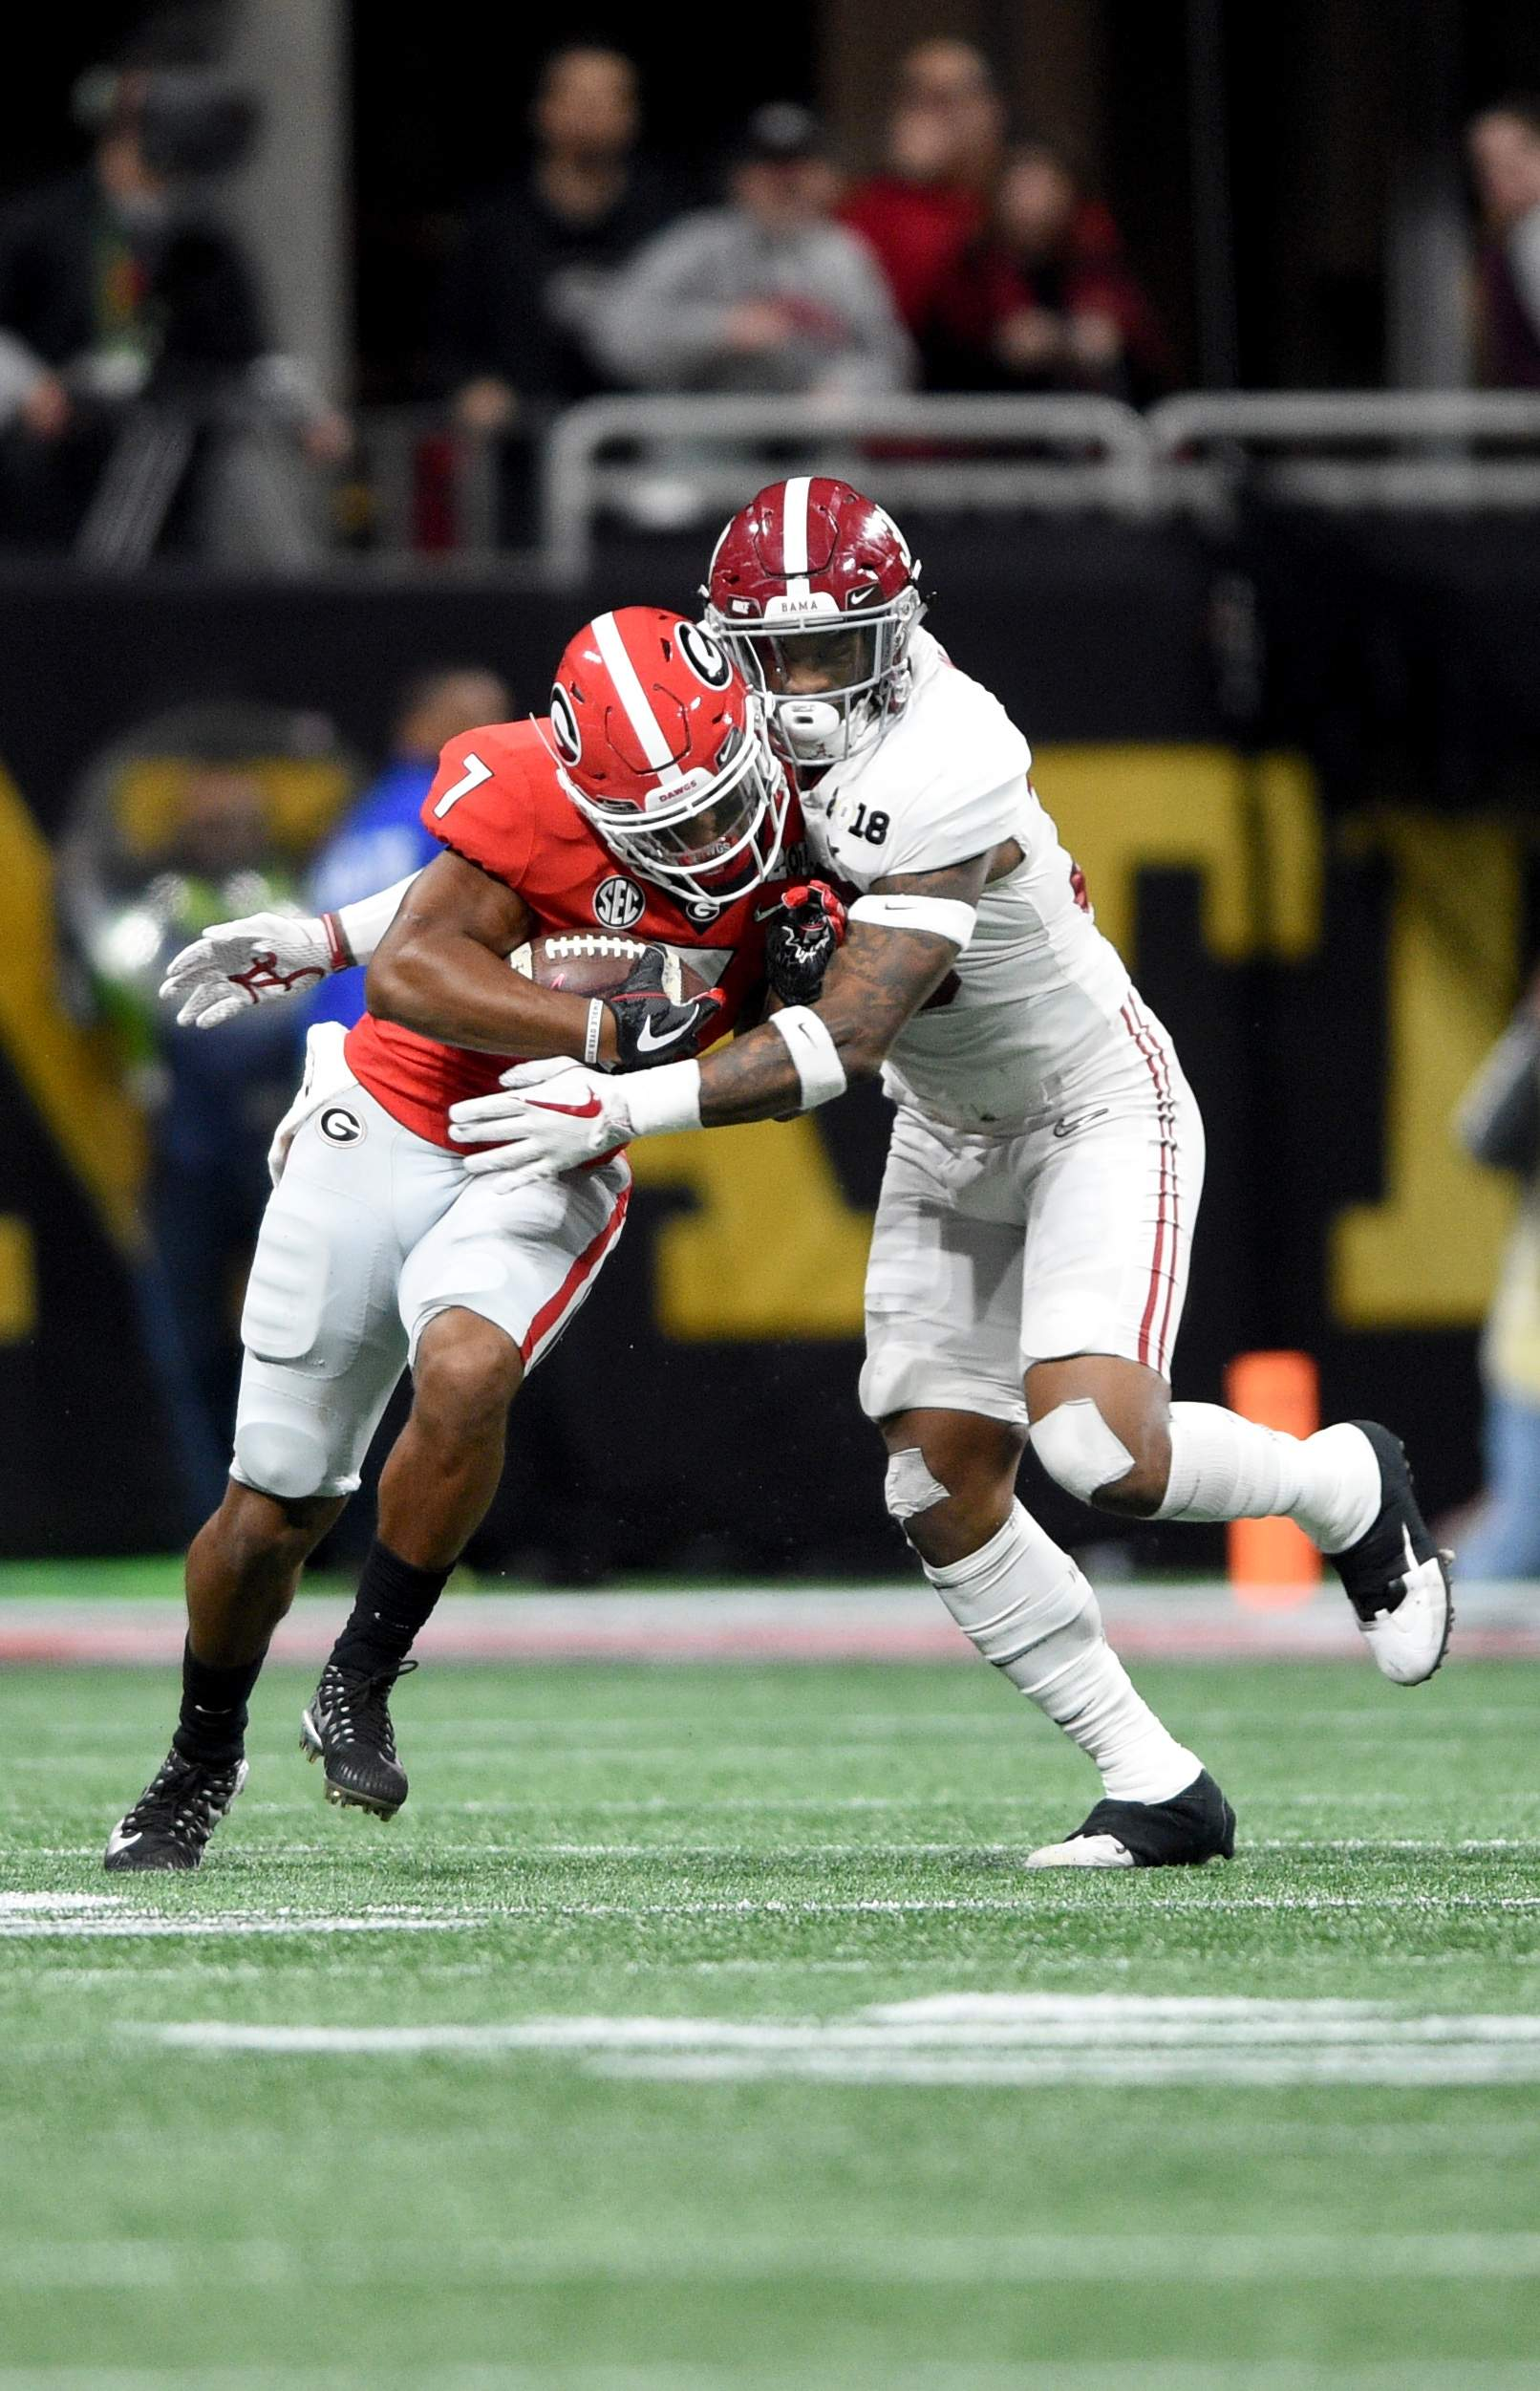 Georgia's D'Andre Swift, left, tries to break free of Alabama's Mack Wilson during the second period of the 2018 College Football Playoff National Championship at Mercedes-Benz Stadium in Atlanta, Ga., Monday evening January 8, 2018. MICHAEL HOLAHAN/AUGUSTA CHRONICLE